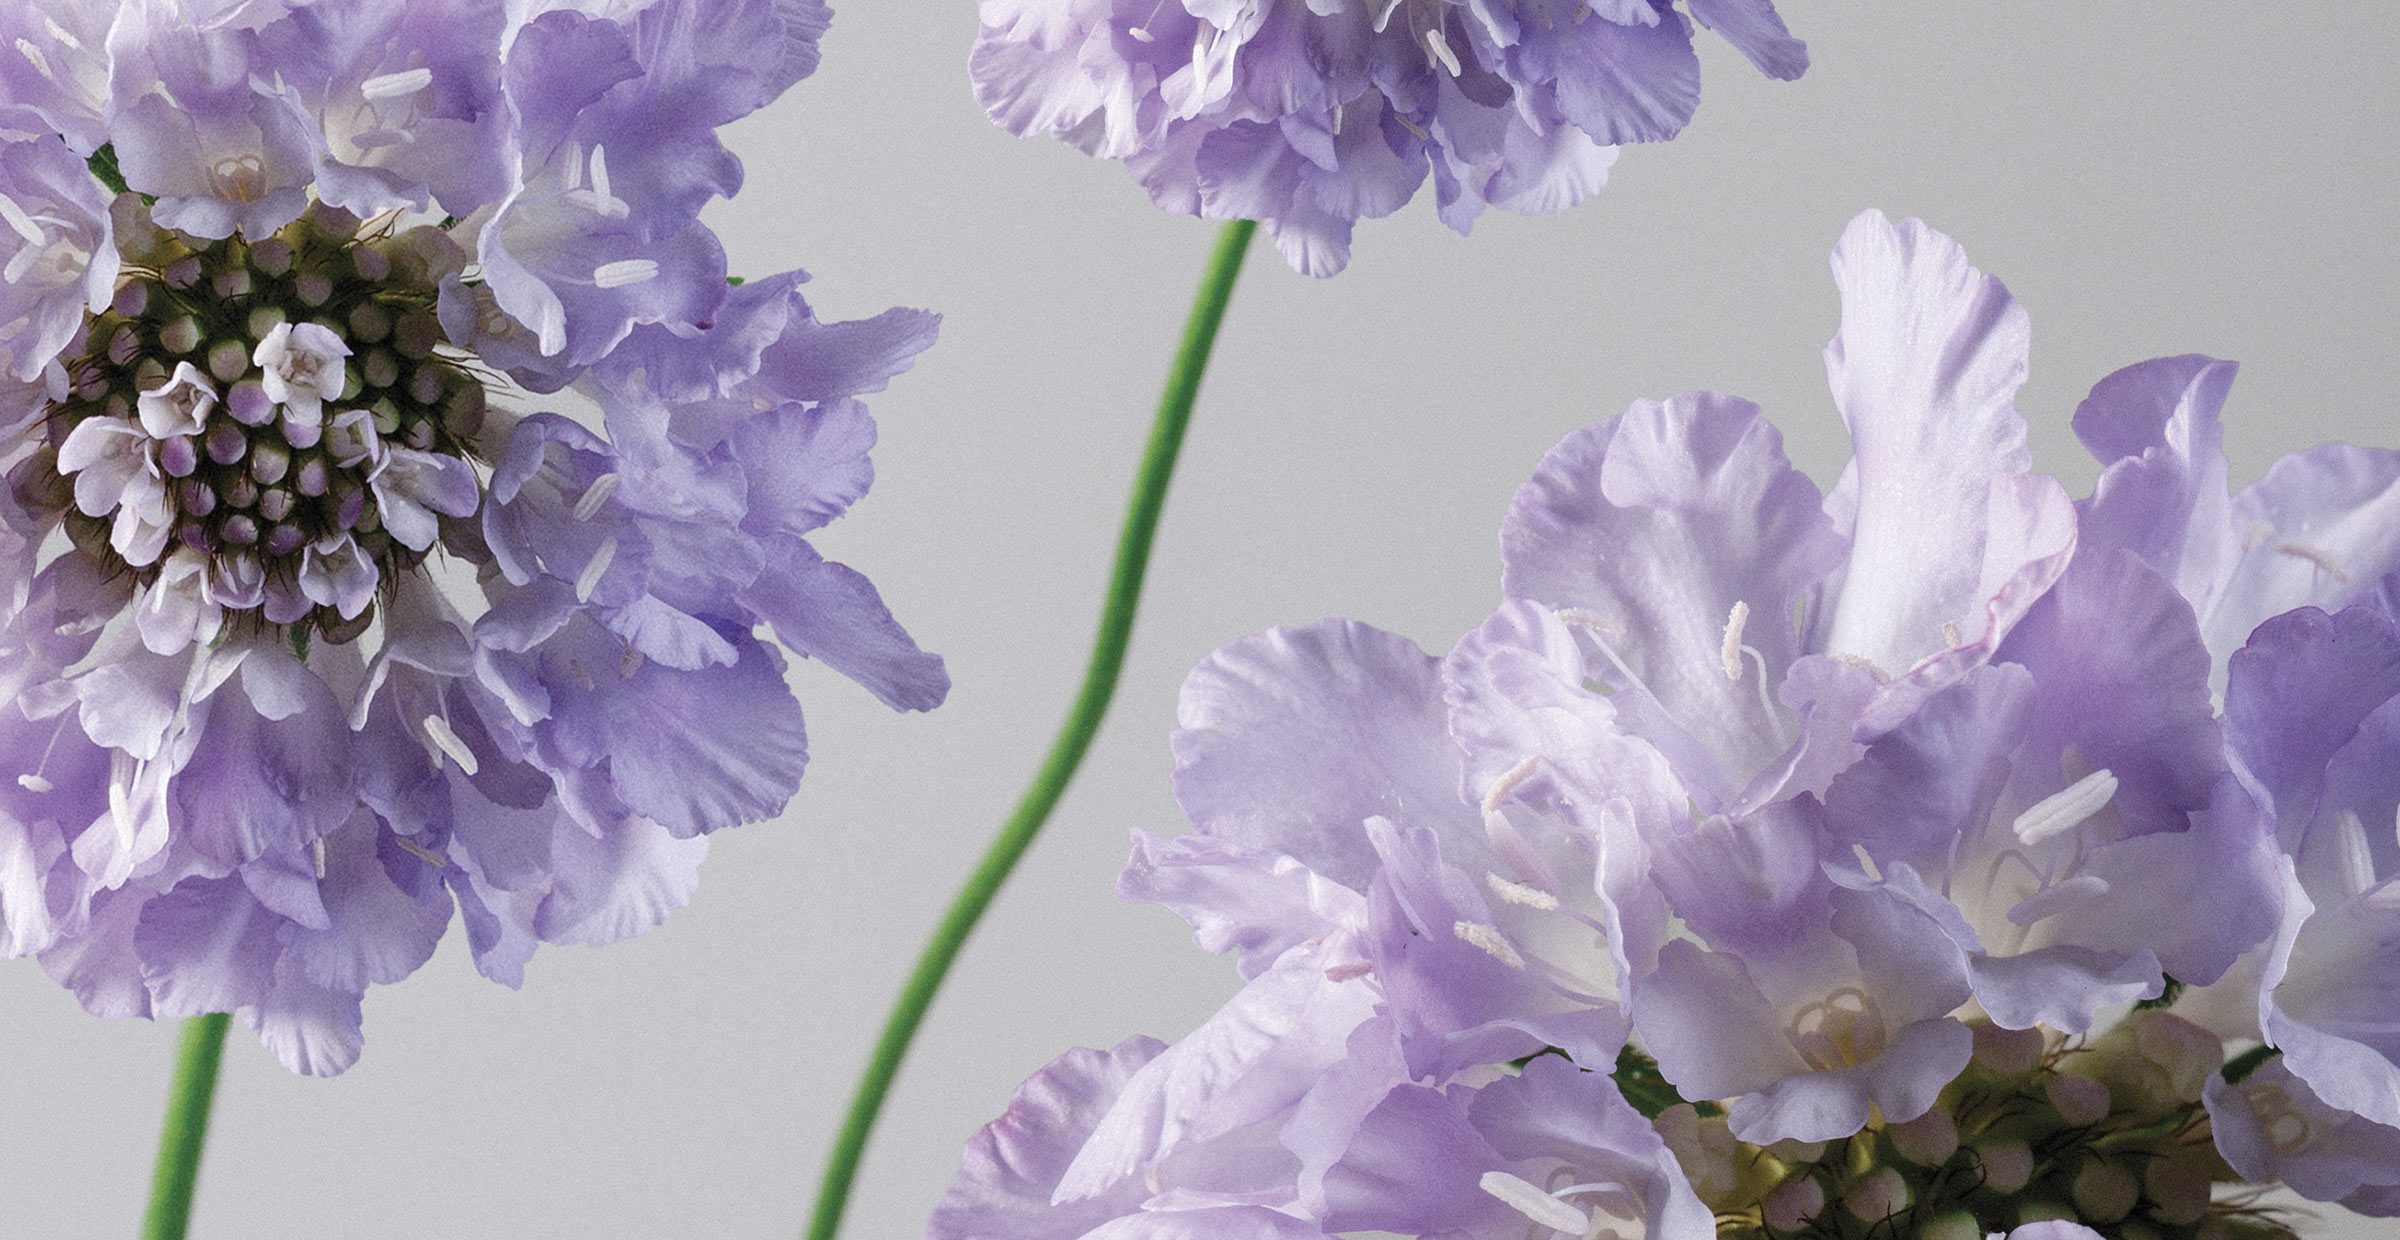 Banner image of violet scabiosa close up for the about page